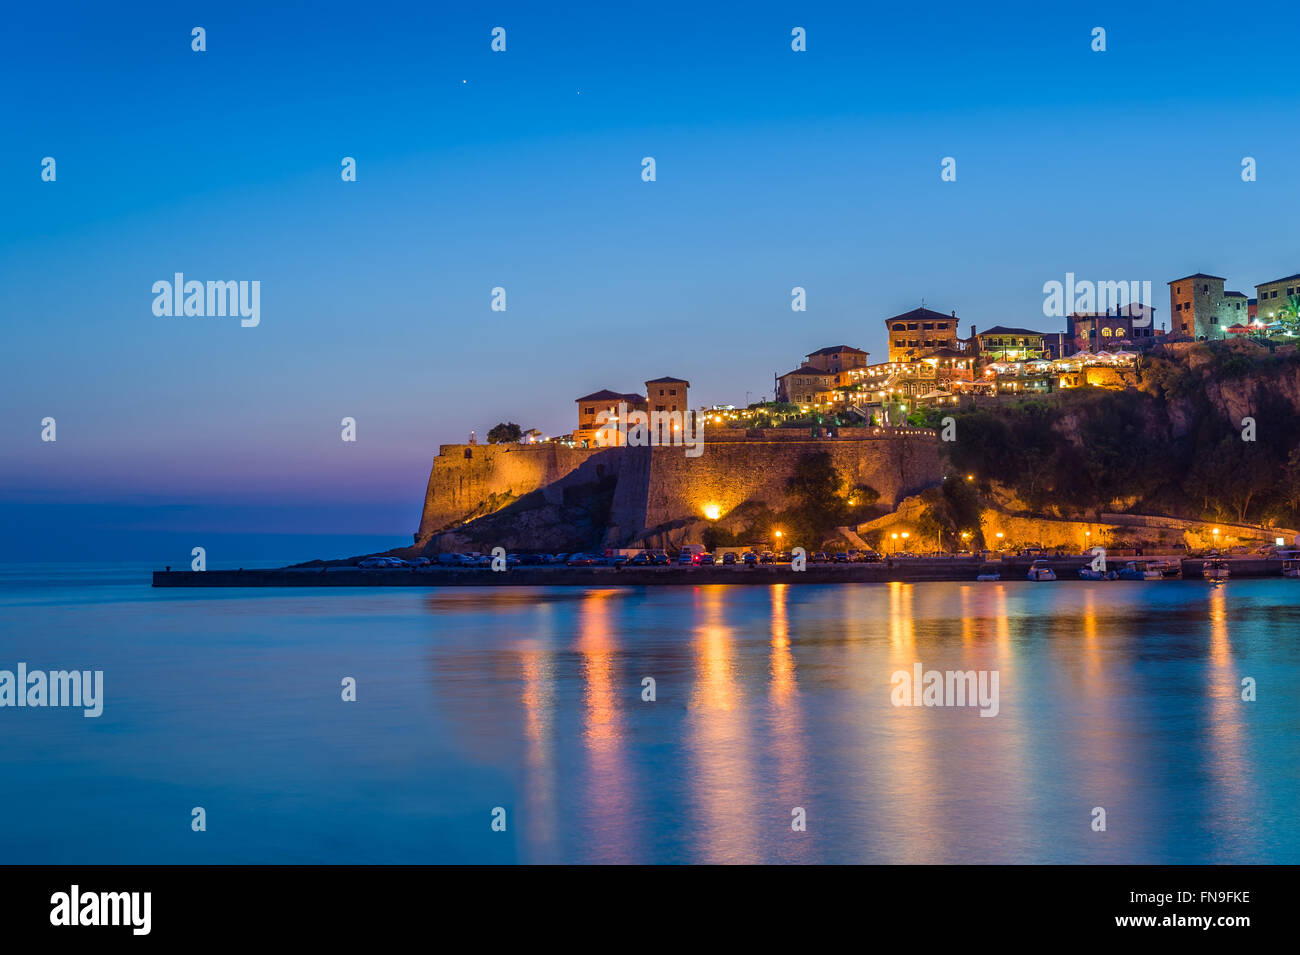 Ulcinj old town fortress at night with silky water and stars on a sky. Stock Photo